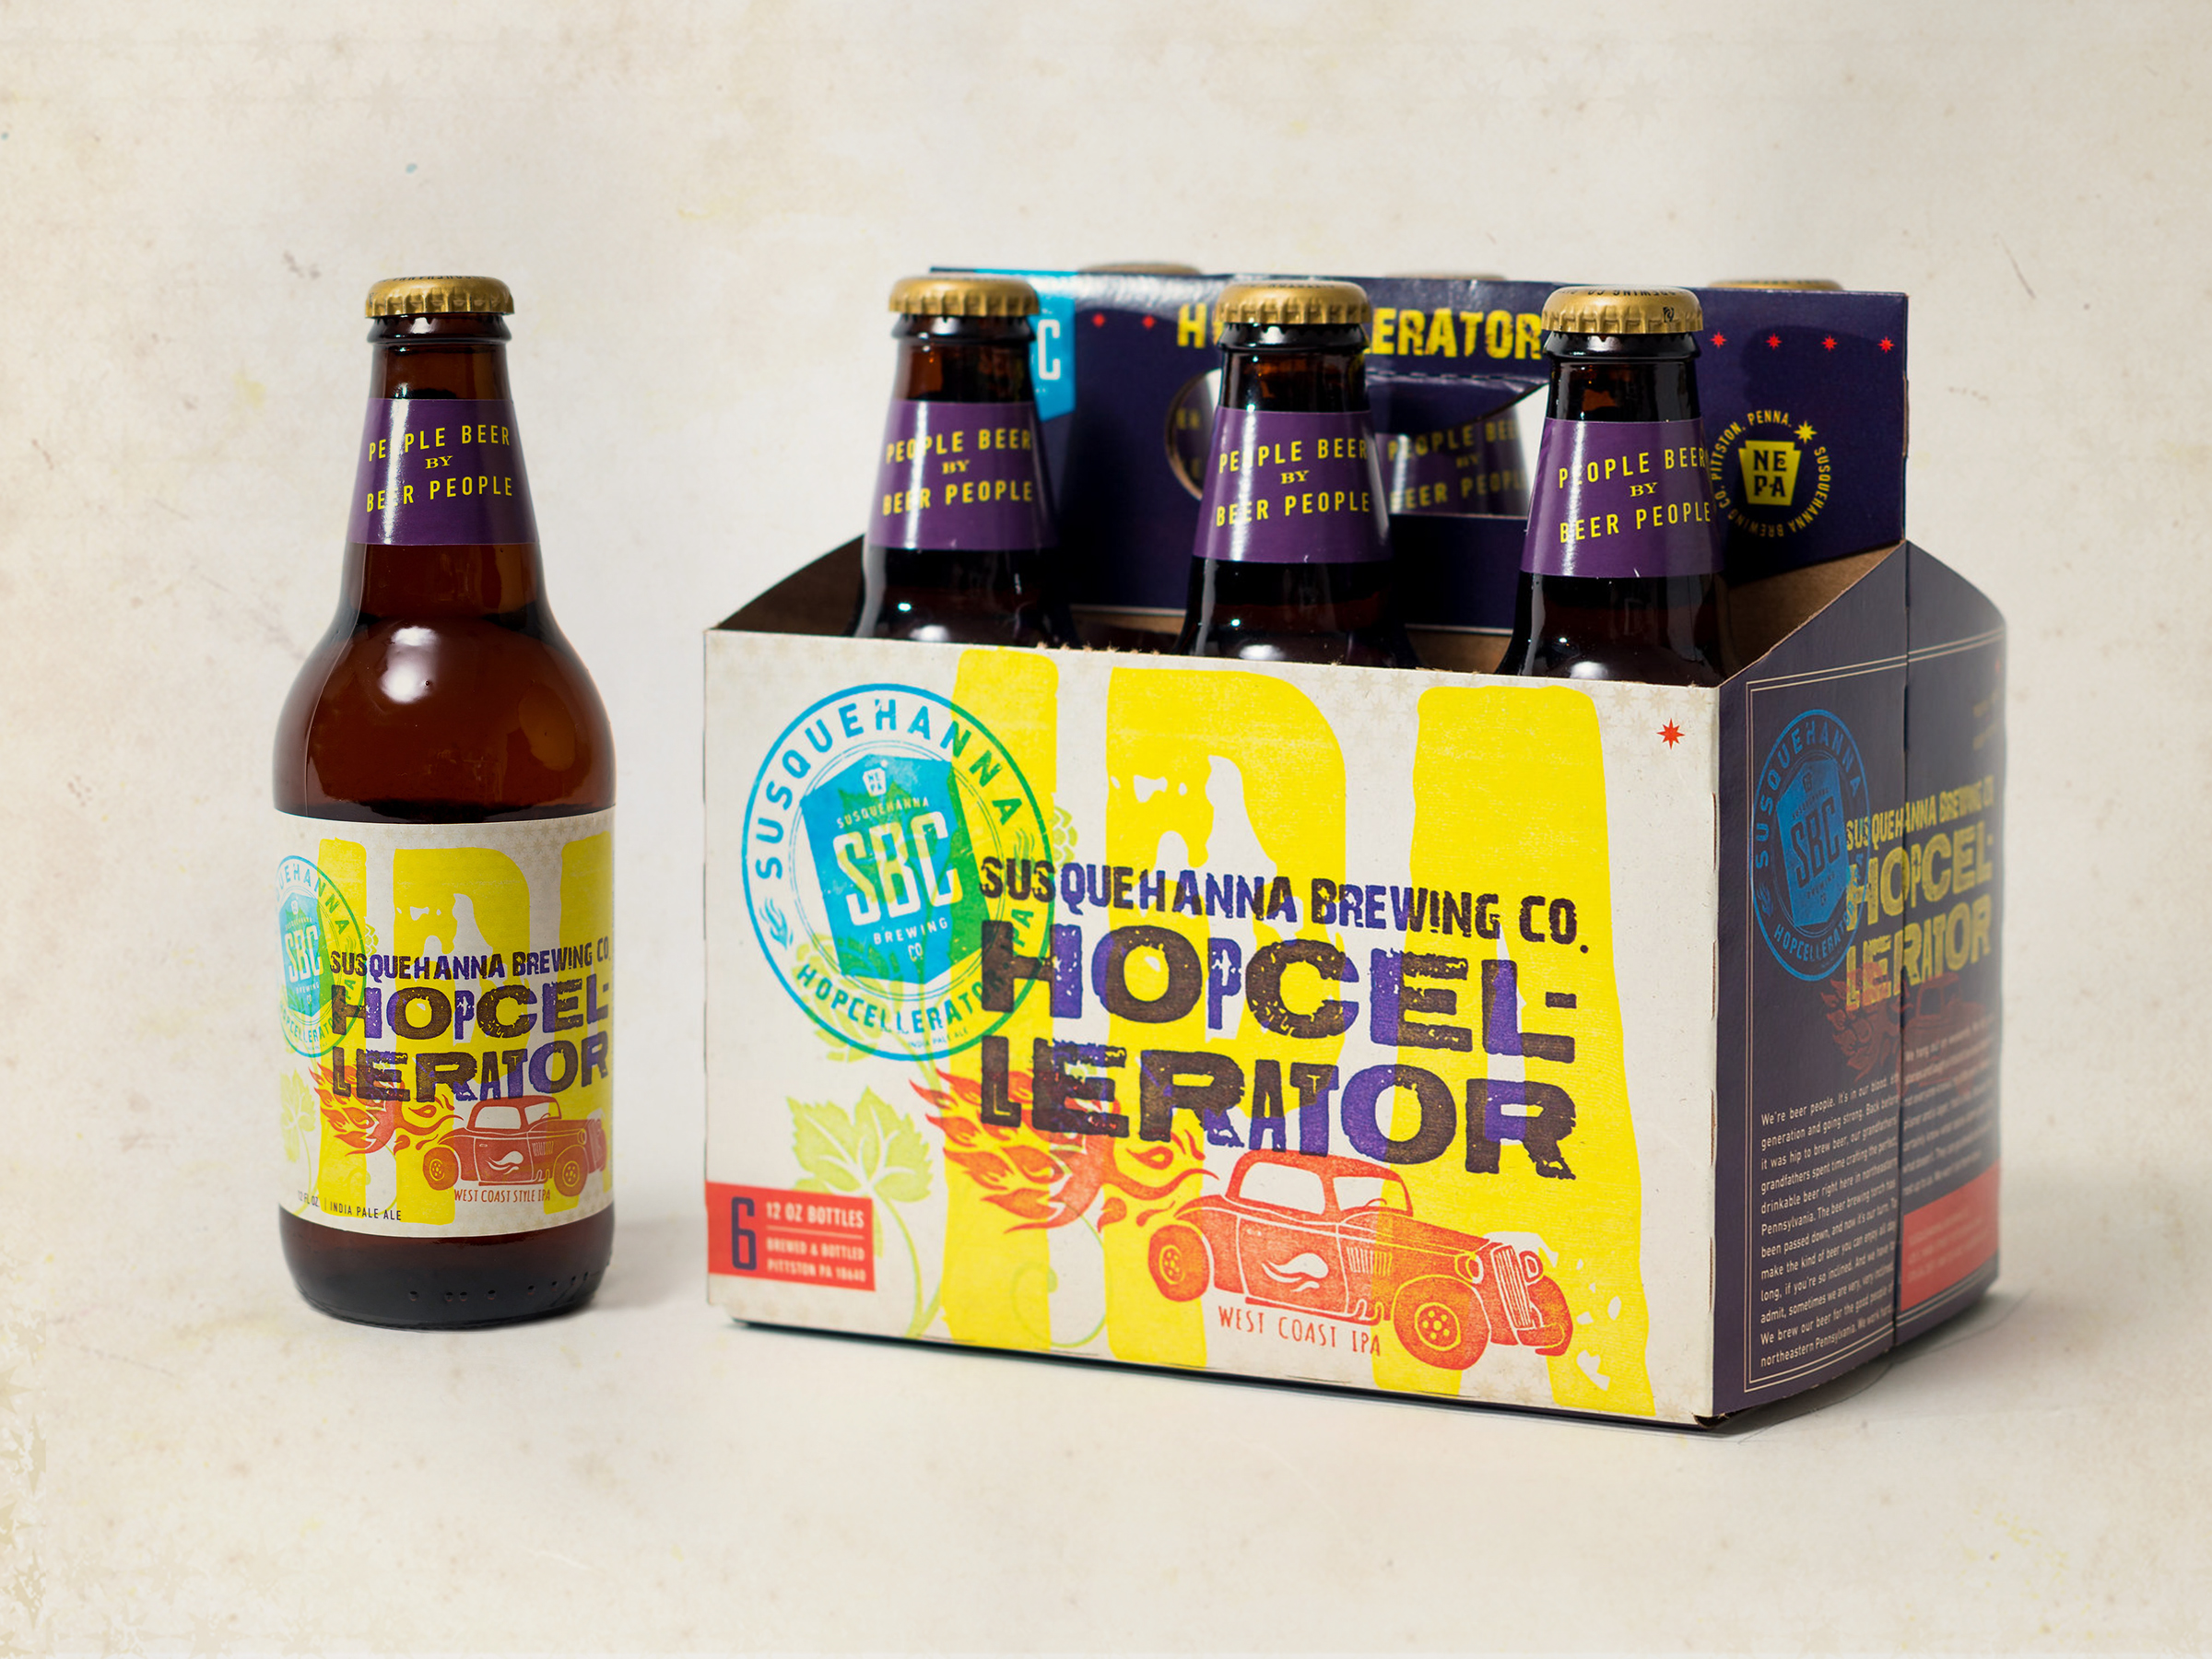 Susquehanna Brewing Co. Hopcellerator Packaging by Just Make Things